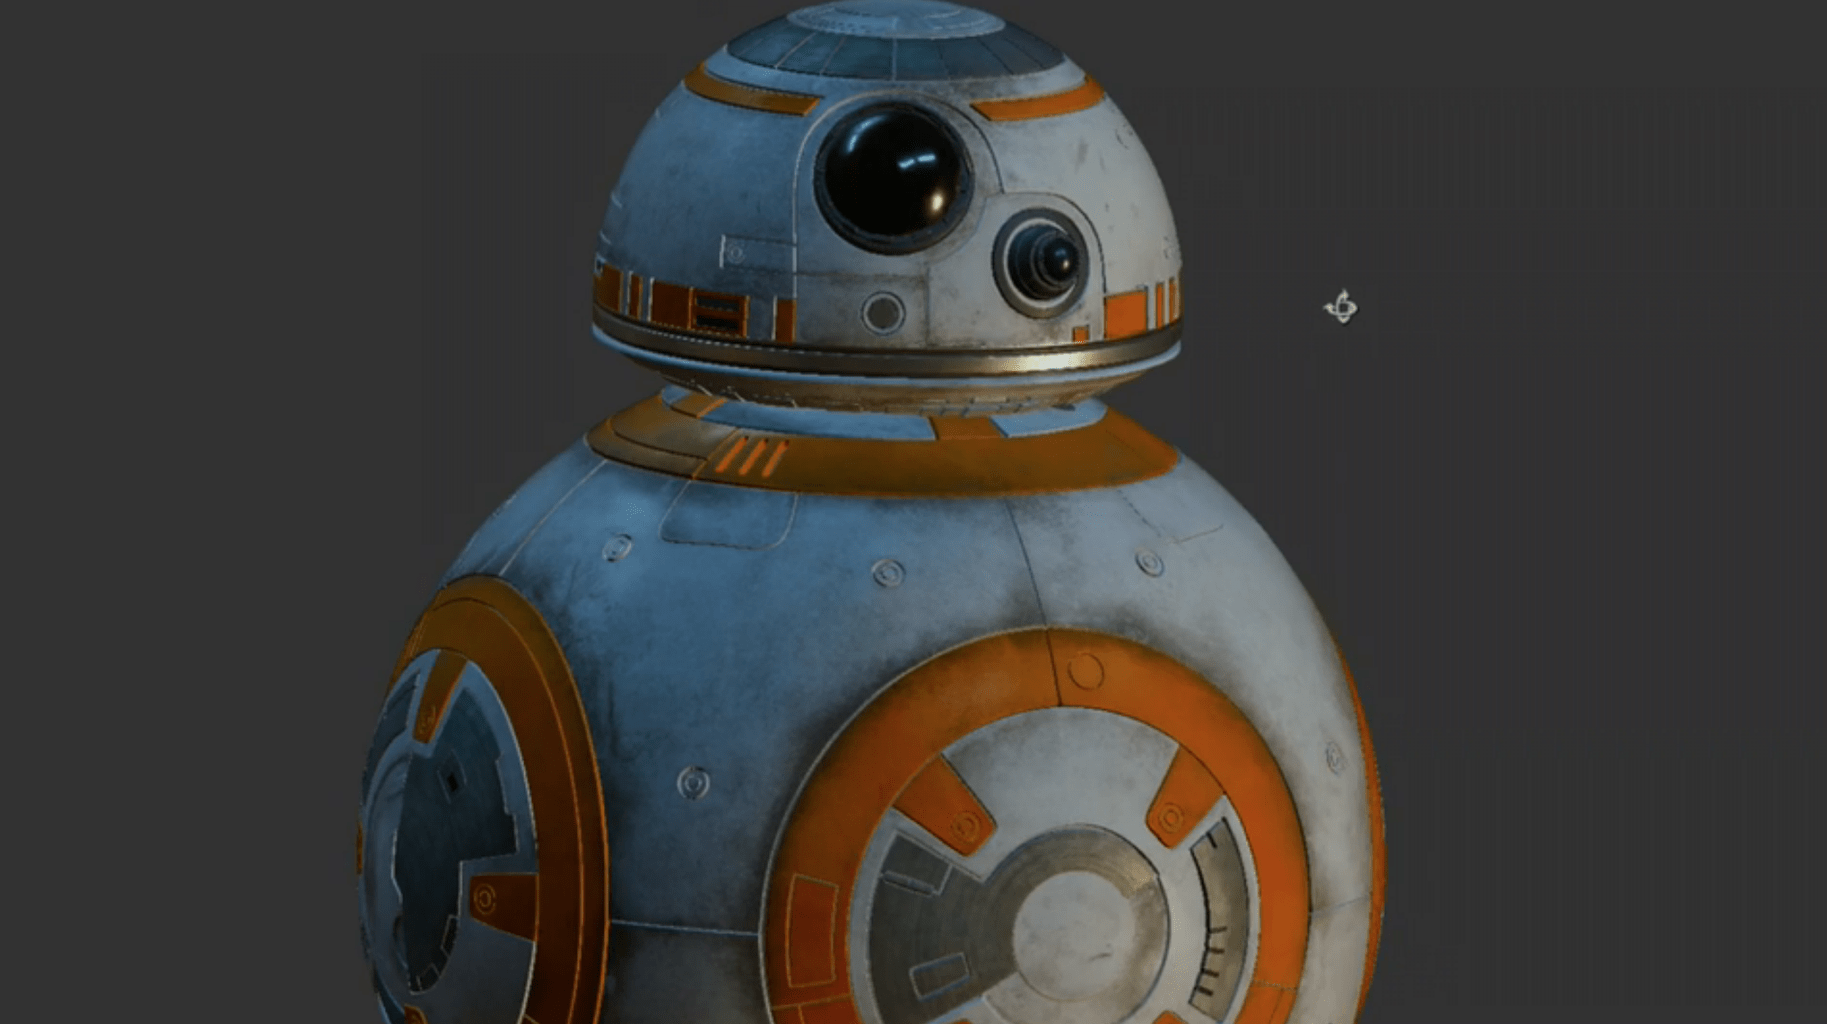 Star Wars: The Force Awakens' Behind the Frames – CGI BB-8 Doc and more!